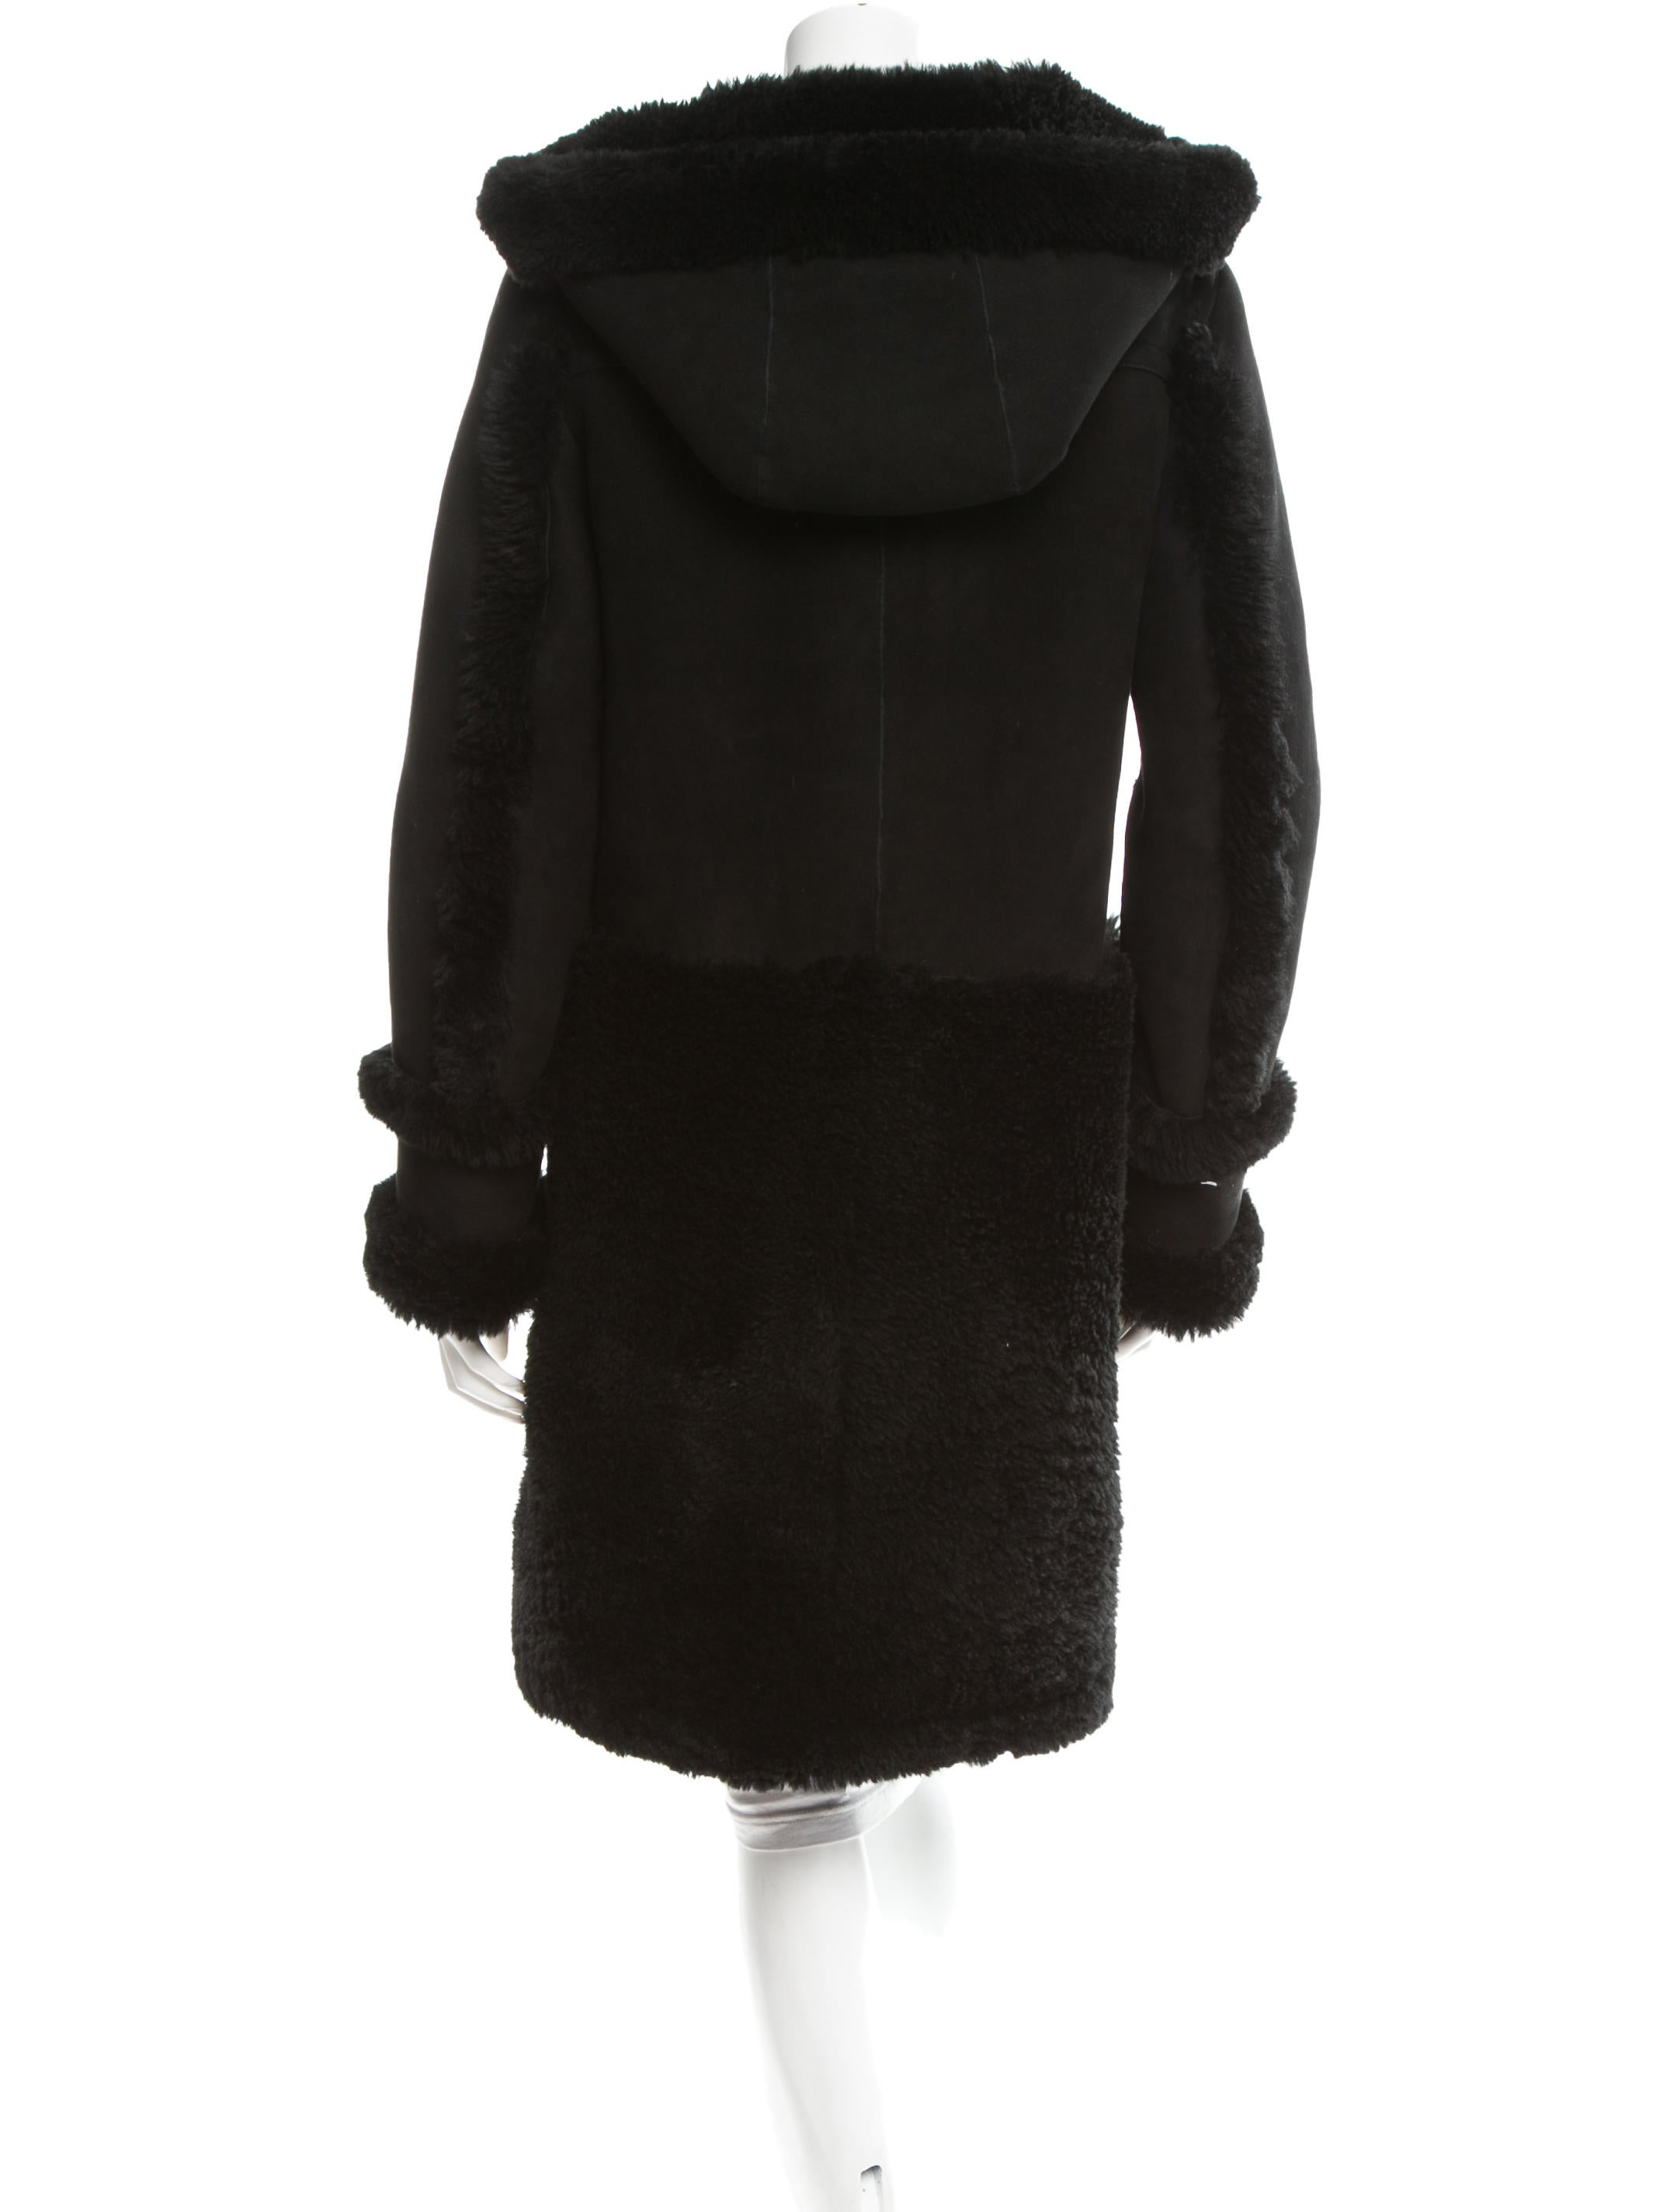 Coach Shearling Duffle Coat - Clothing - CCH20086 | The RealReal